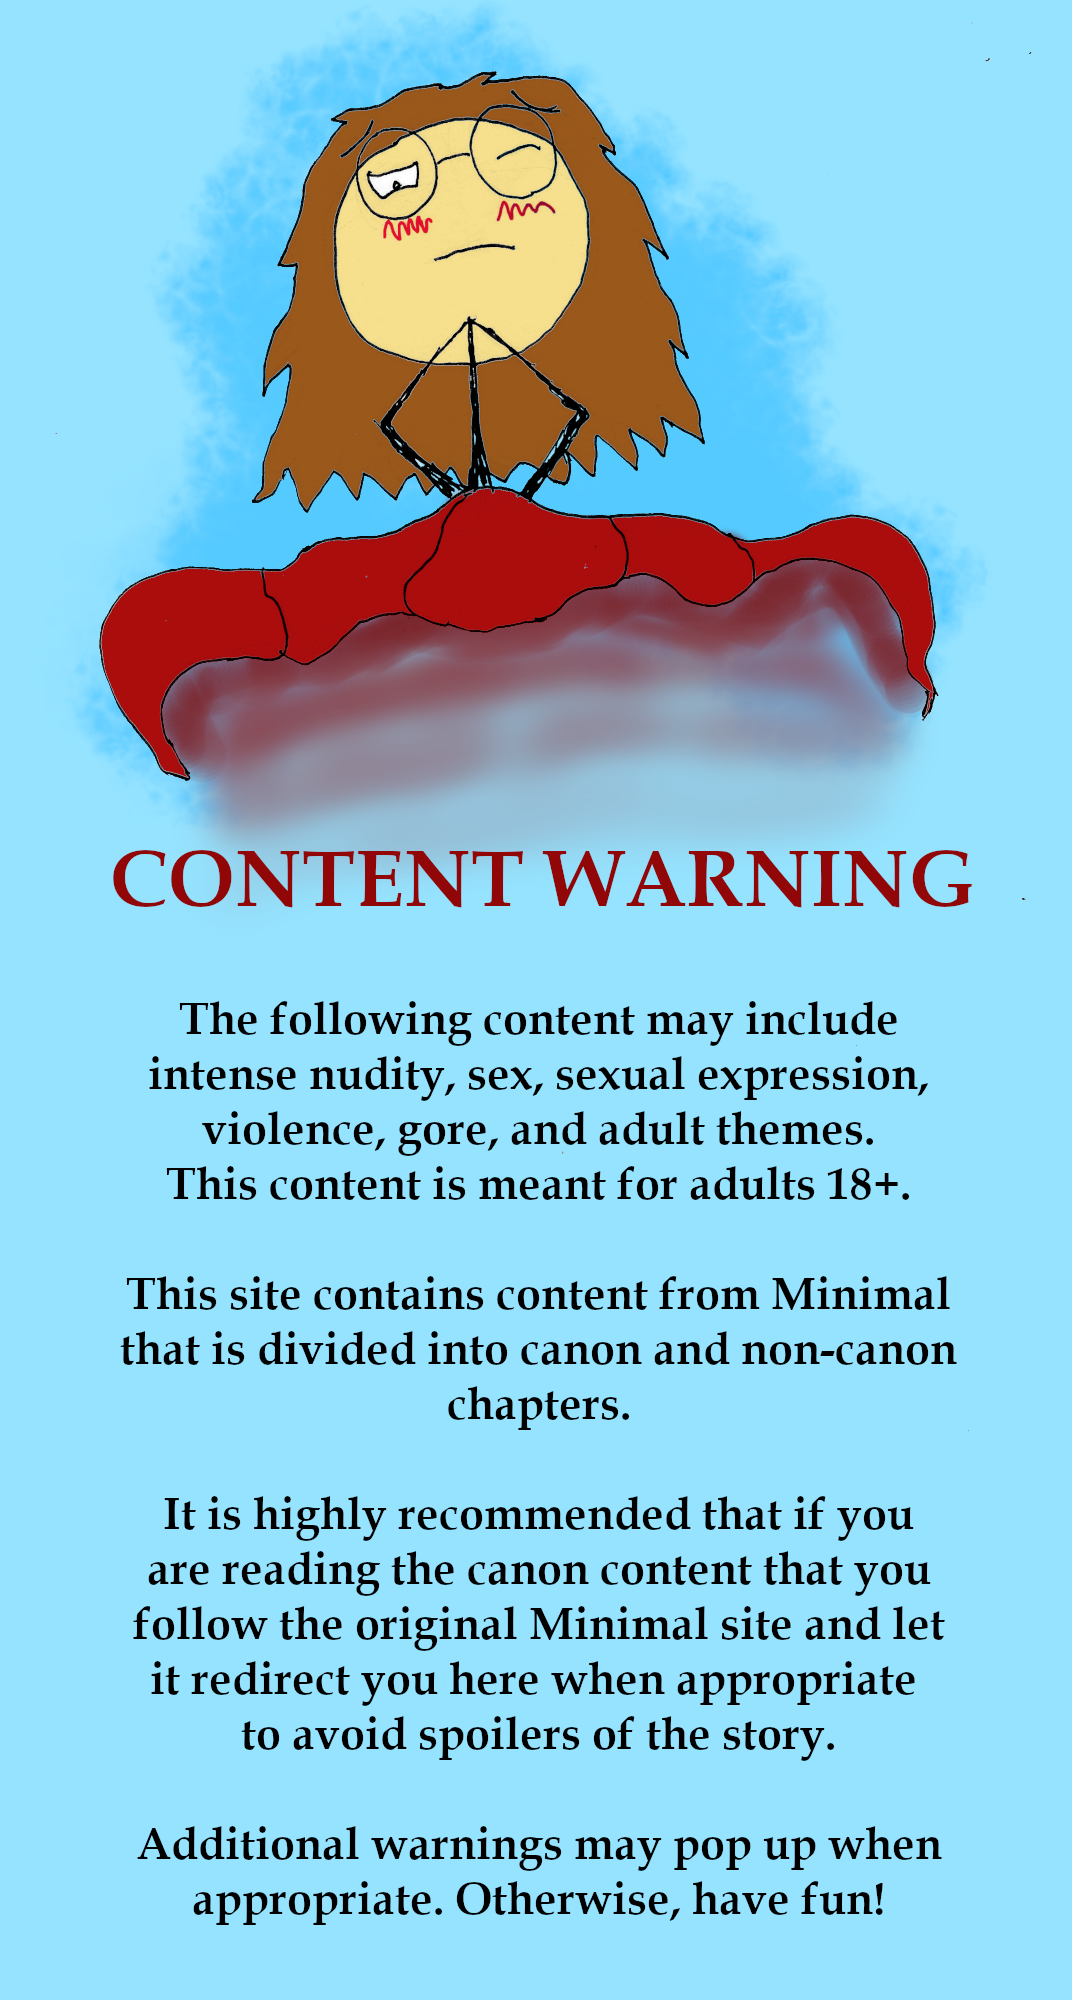 Content Warning Page